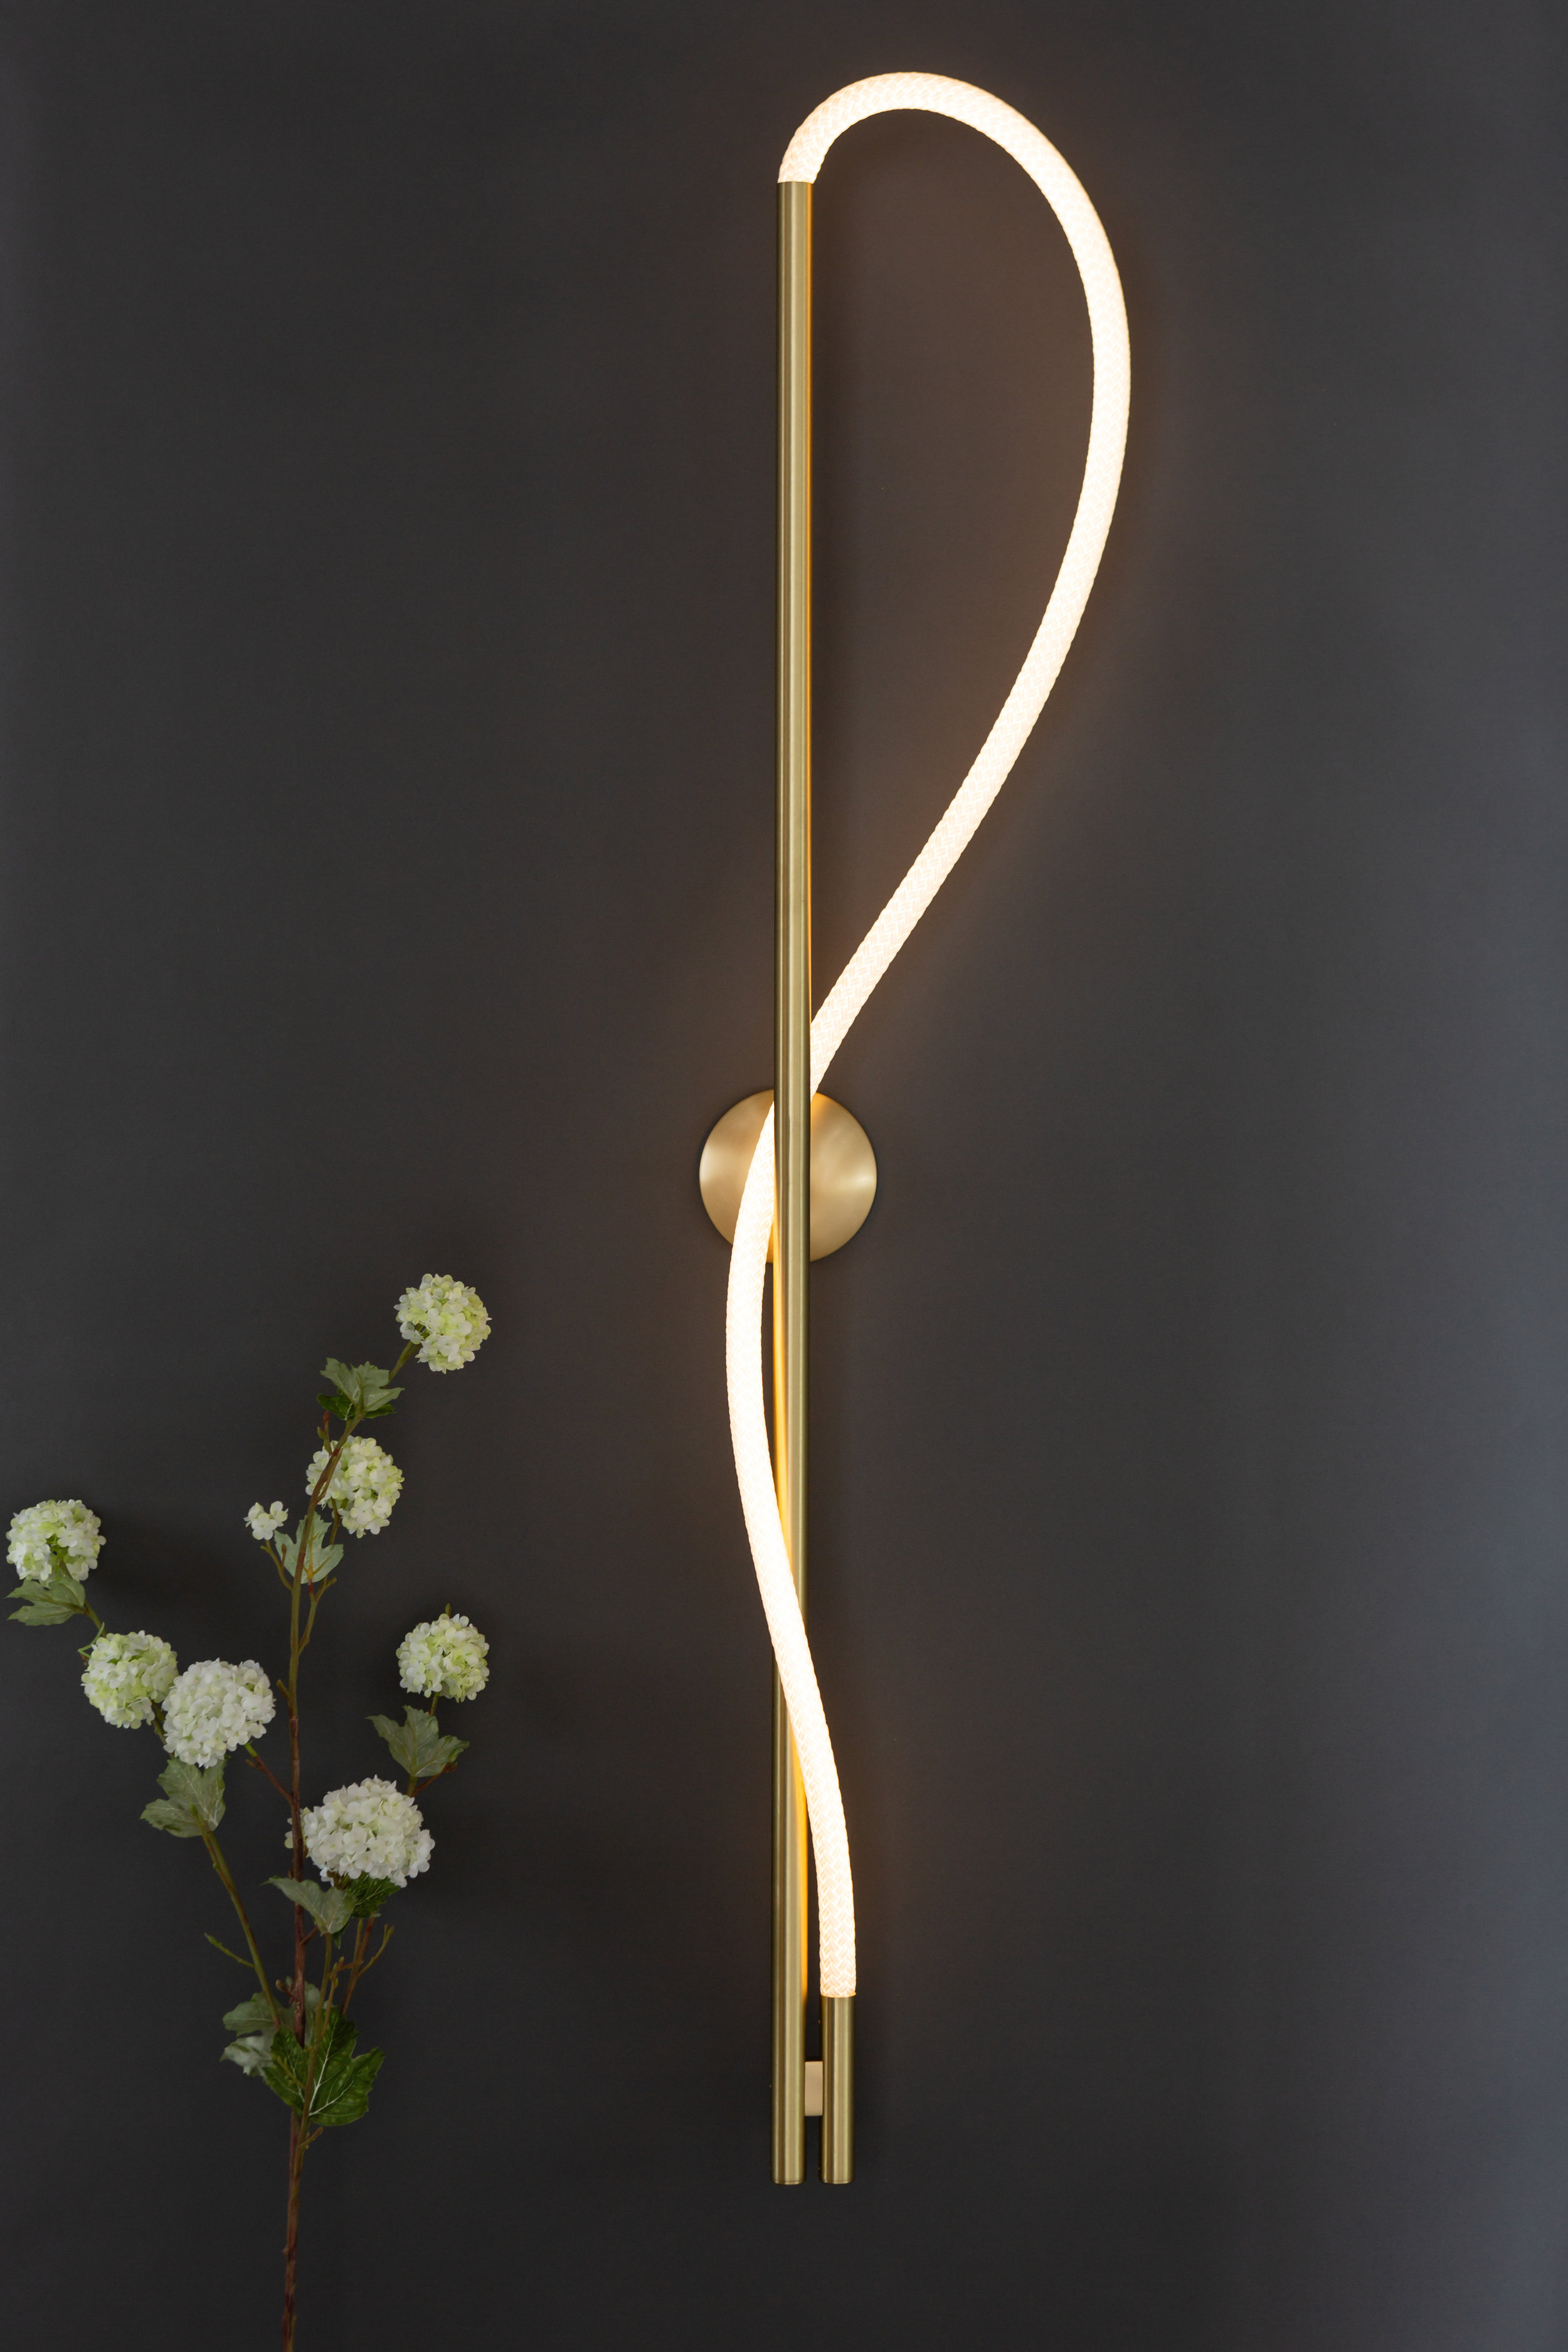 As pictured: 4.5' Surrey Sconce in Satin Brass - Vertical Orientation